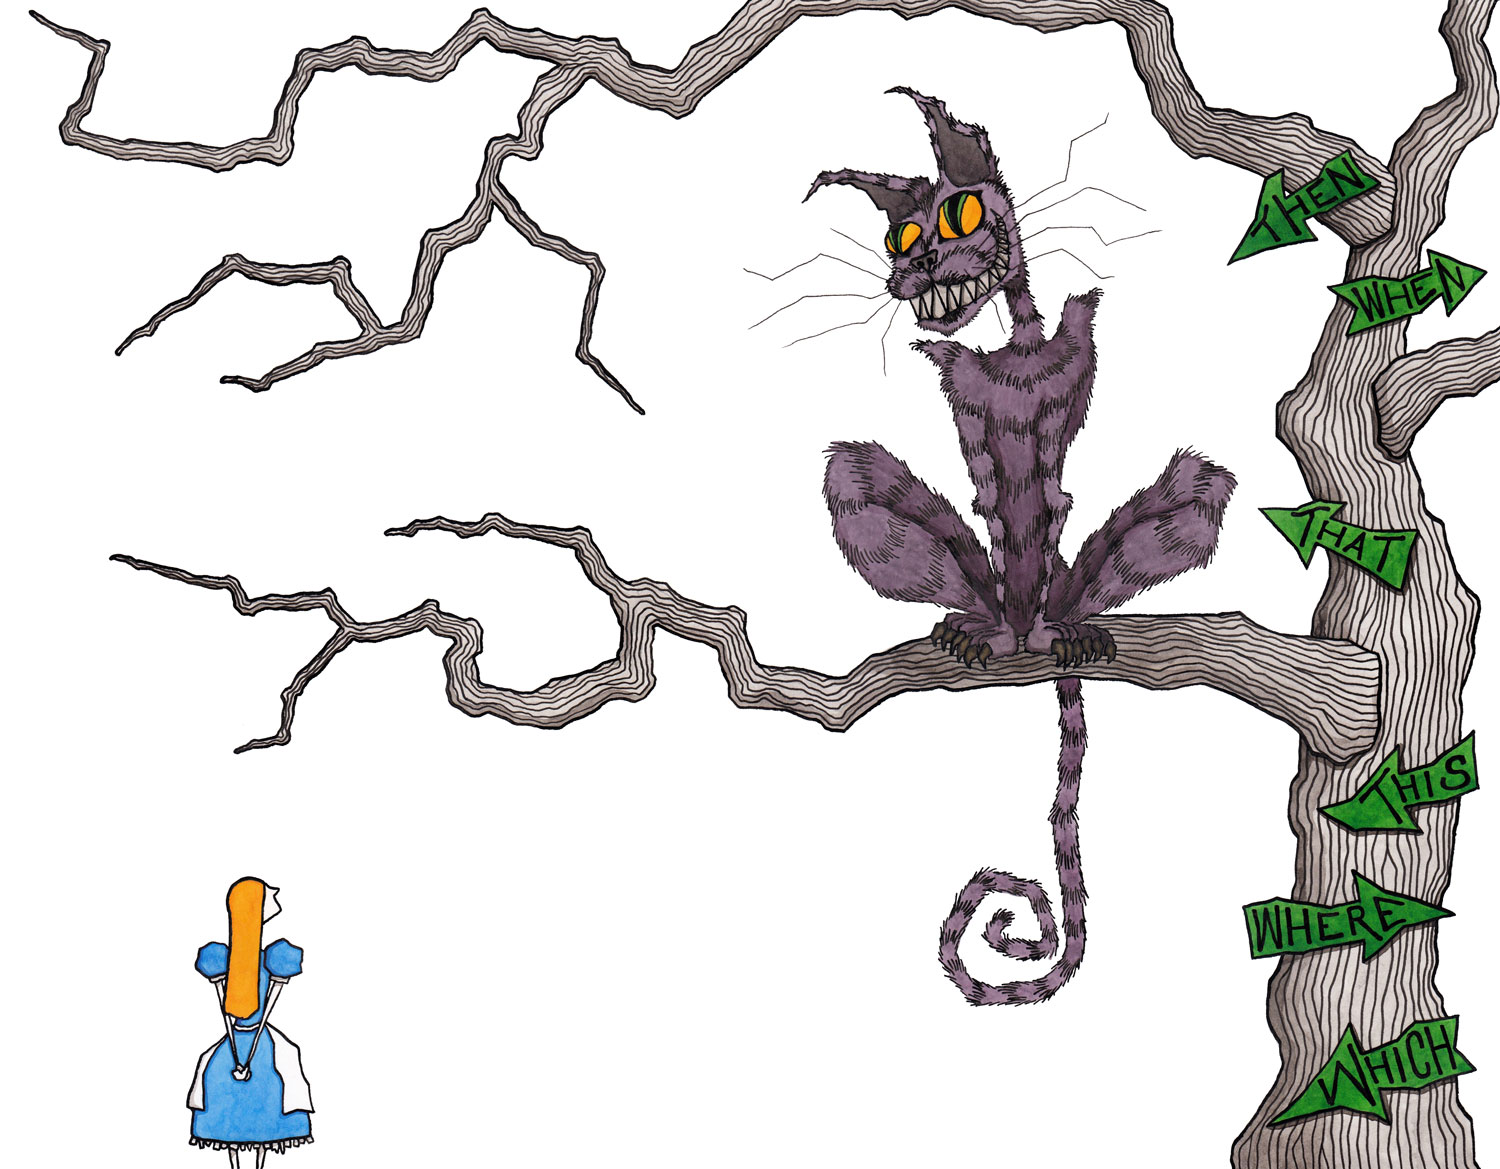 alice-in-wonderland-cheshire-cat-tree-illustration-matthew-woods.jpg